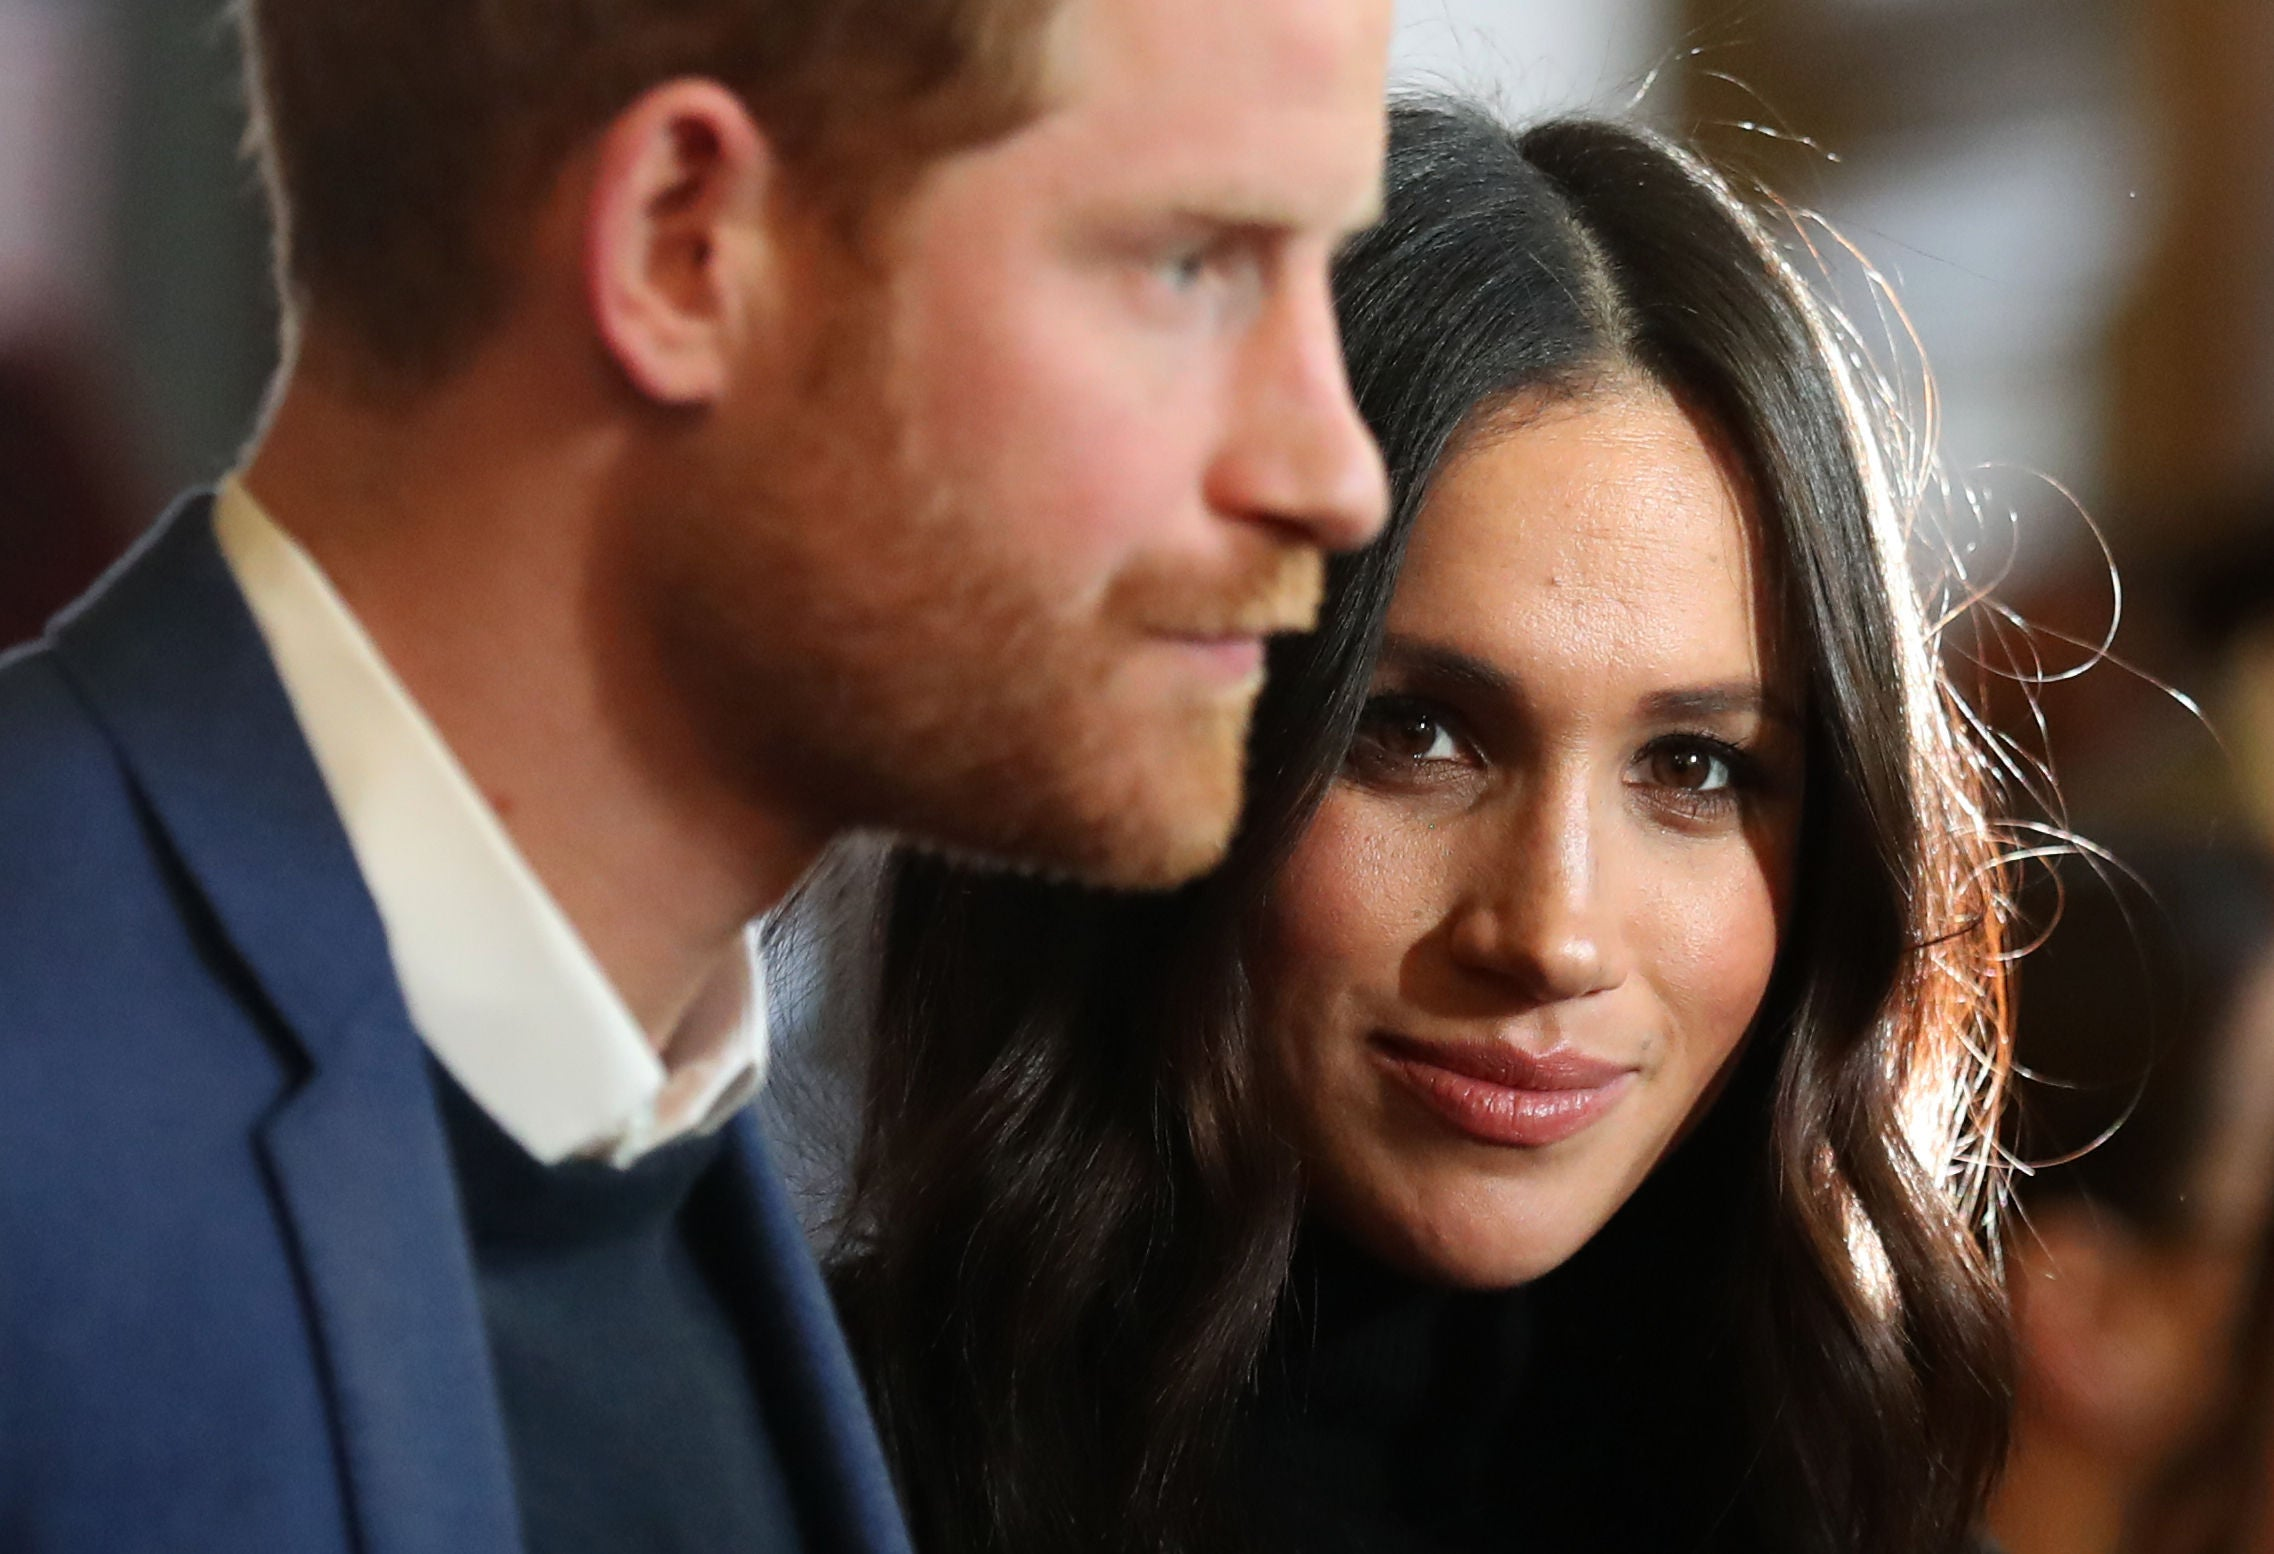 independent.co.uk - Olivia Petter - Meghan Markle watching Prince Philip's funeral from home after being unable to travel due to pregnancy